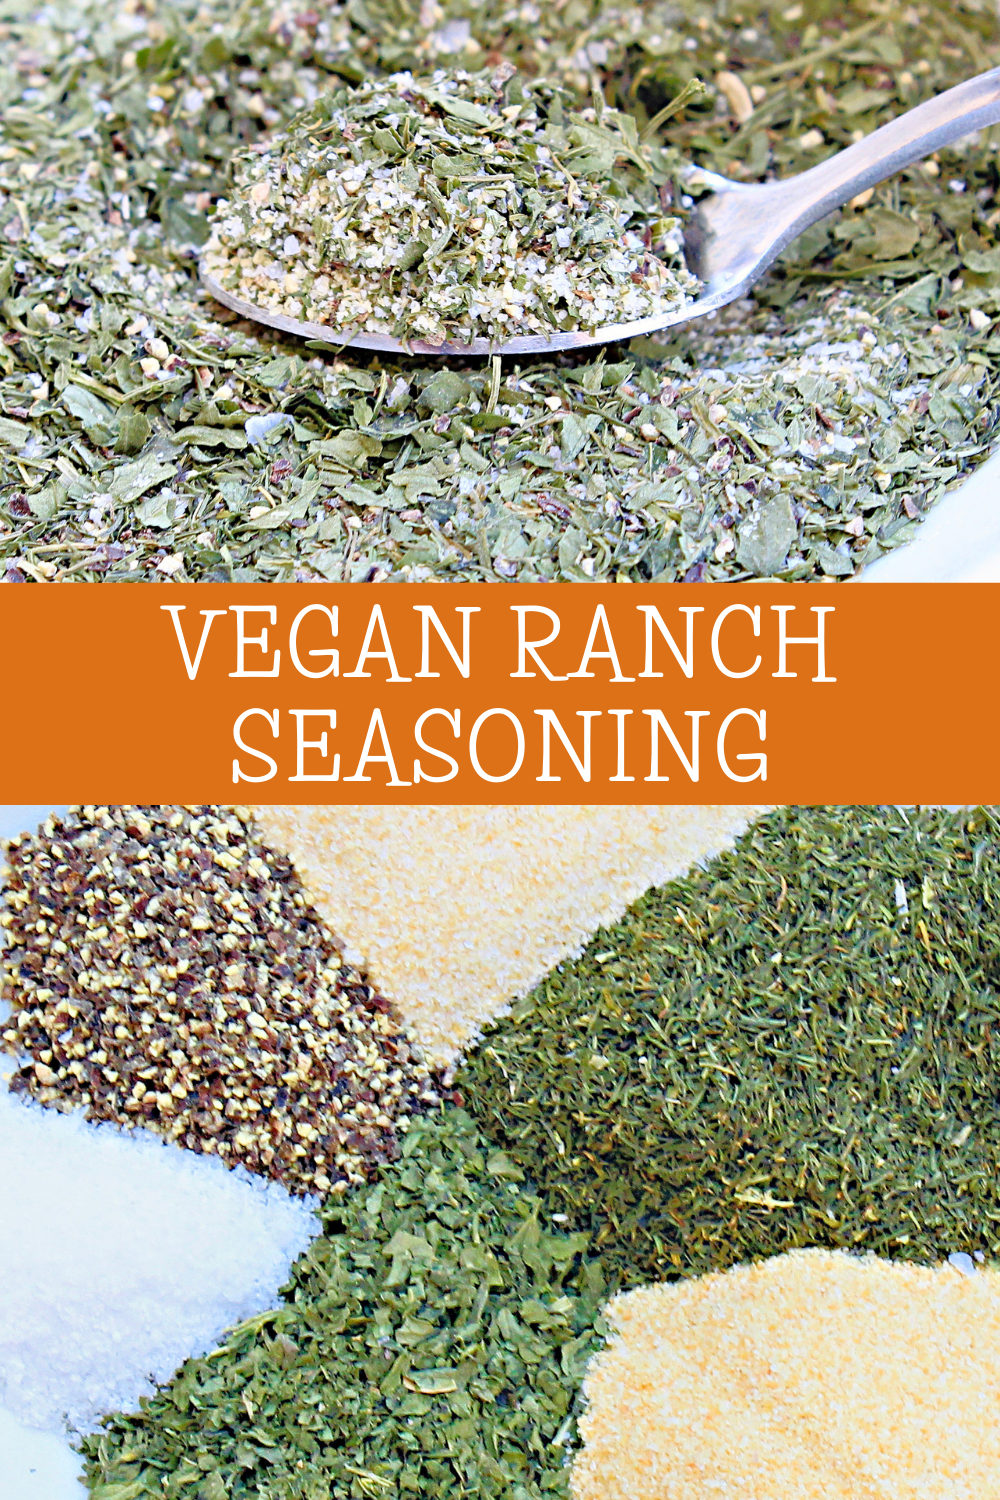 Vegan Ranch Seasoning ~ Got a recipe that calls for a packet of ranch dressing mix? This dairy-free blend is easy to whip up in minutes with just 6 simple ingredients from the spice cabinet. via @thiswifecooks